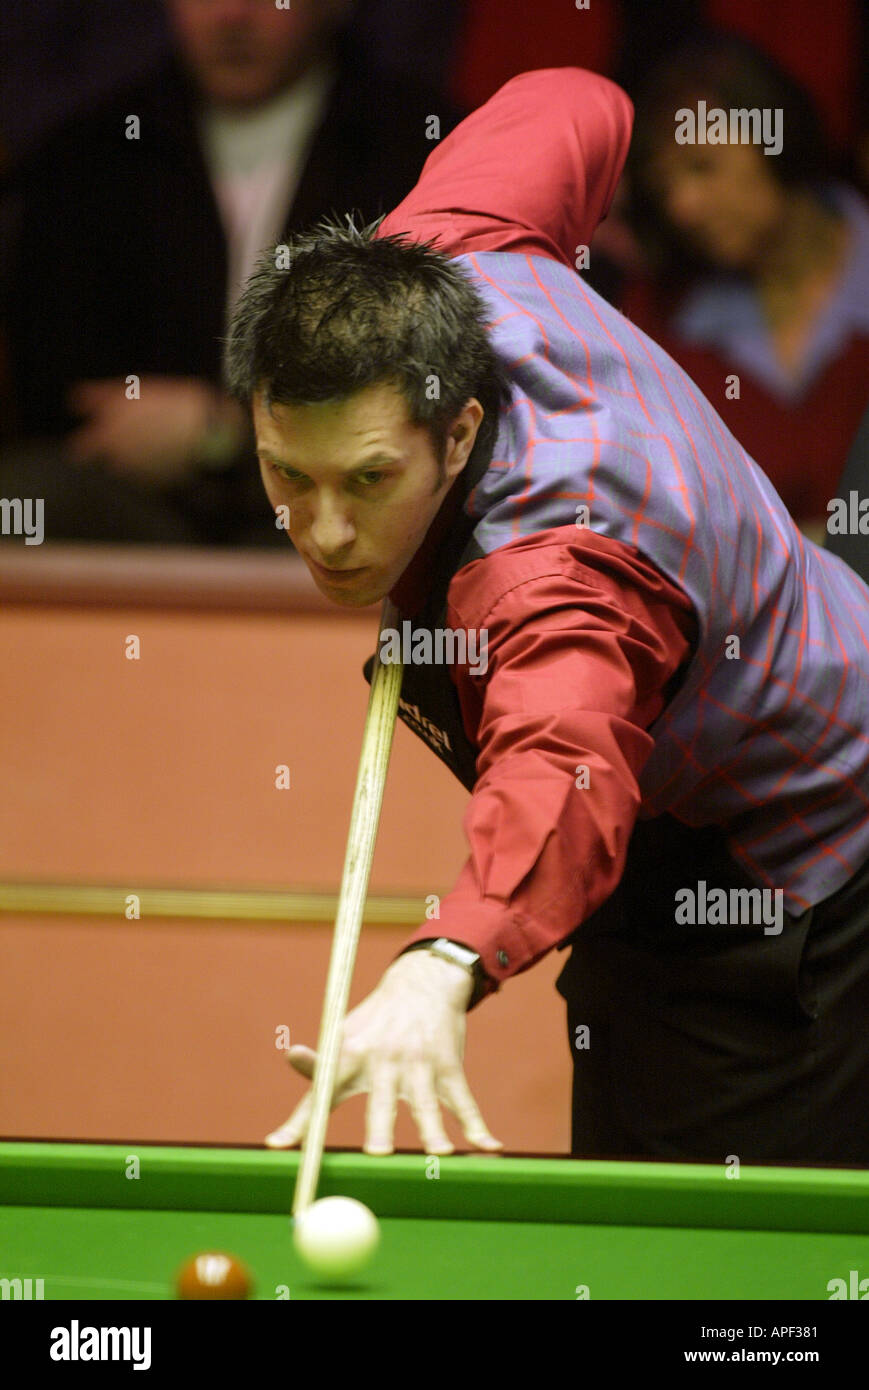 Dominic Dale playing in the 2004 World Snooker Championships in Sheffield - Stock Image